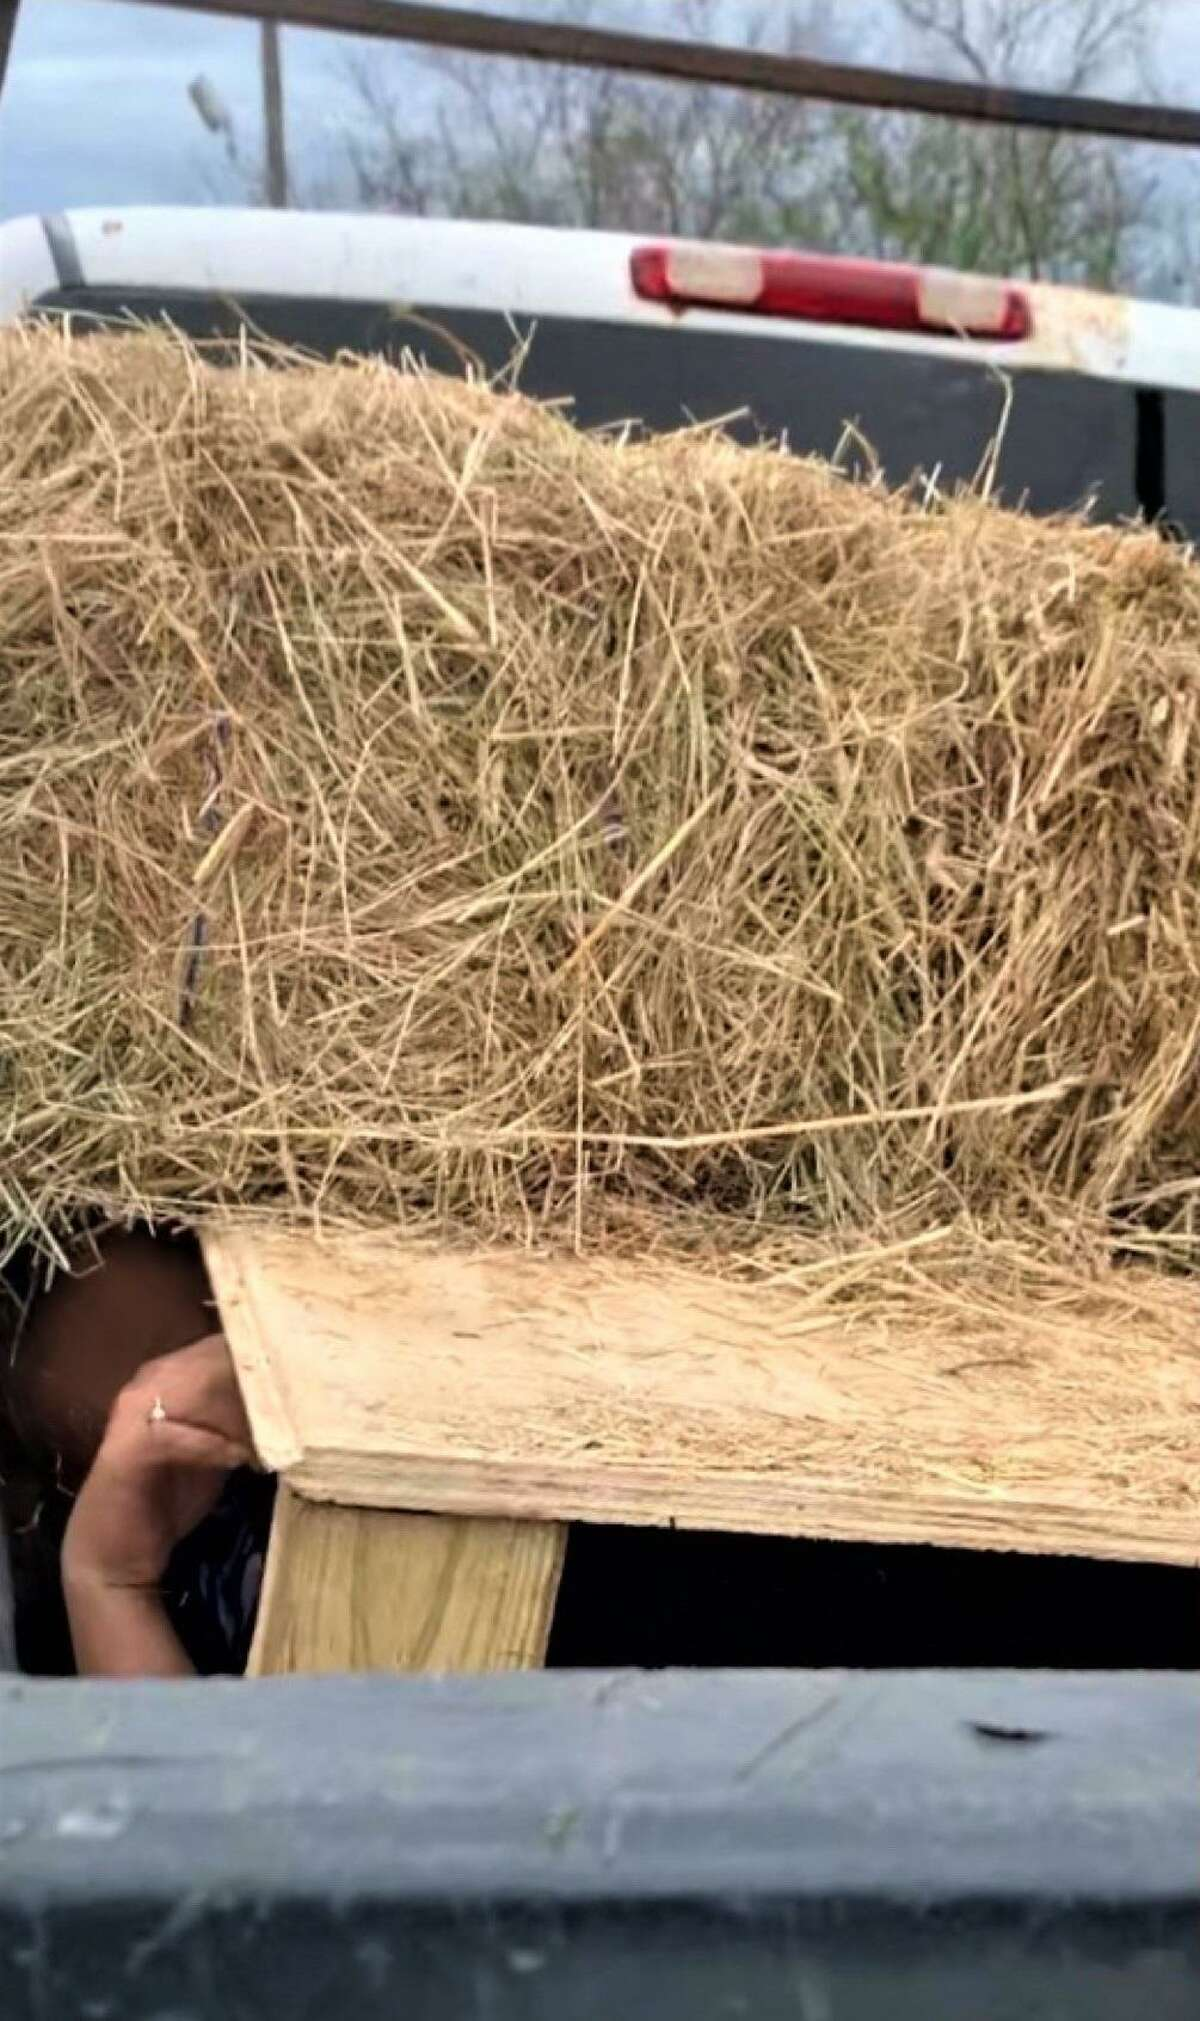 U.S. Border Patrol agents said they discovered five individuals inside this wooden compartment under a load of hay bales. Authorities said the people were immigrants who had crossed the border illegally.